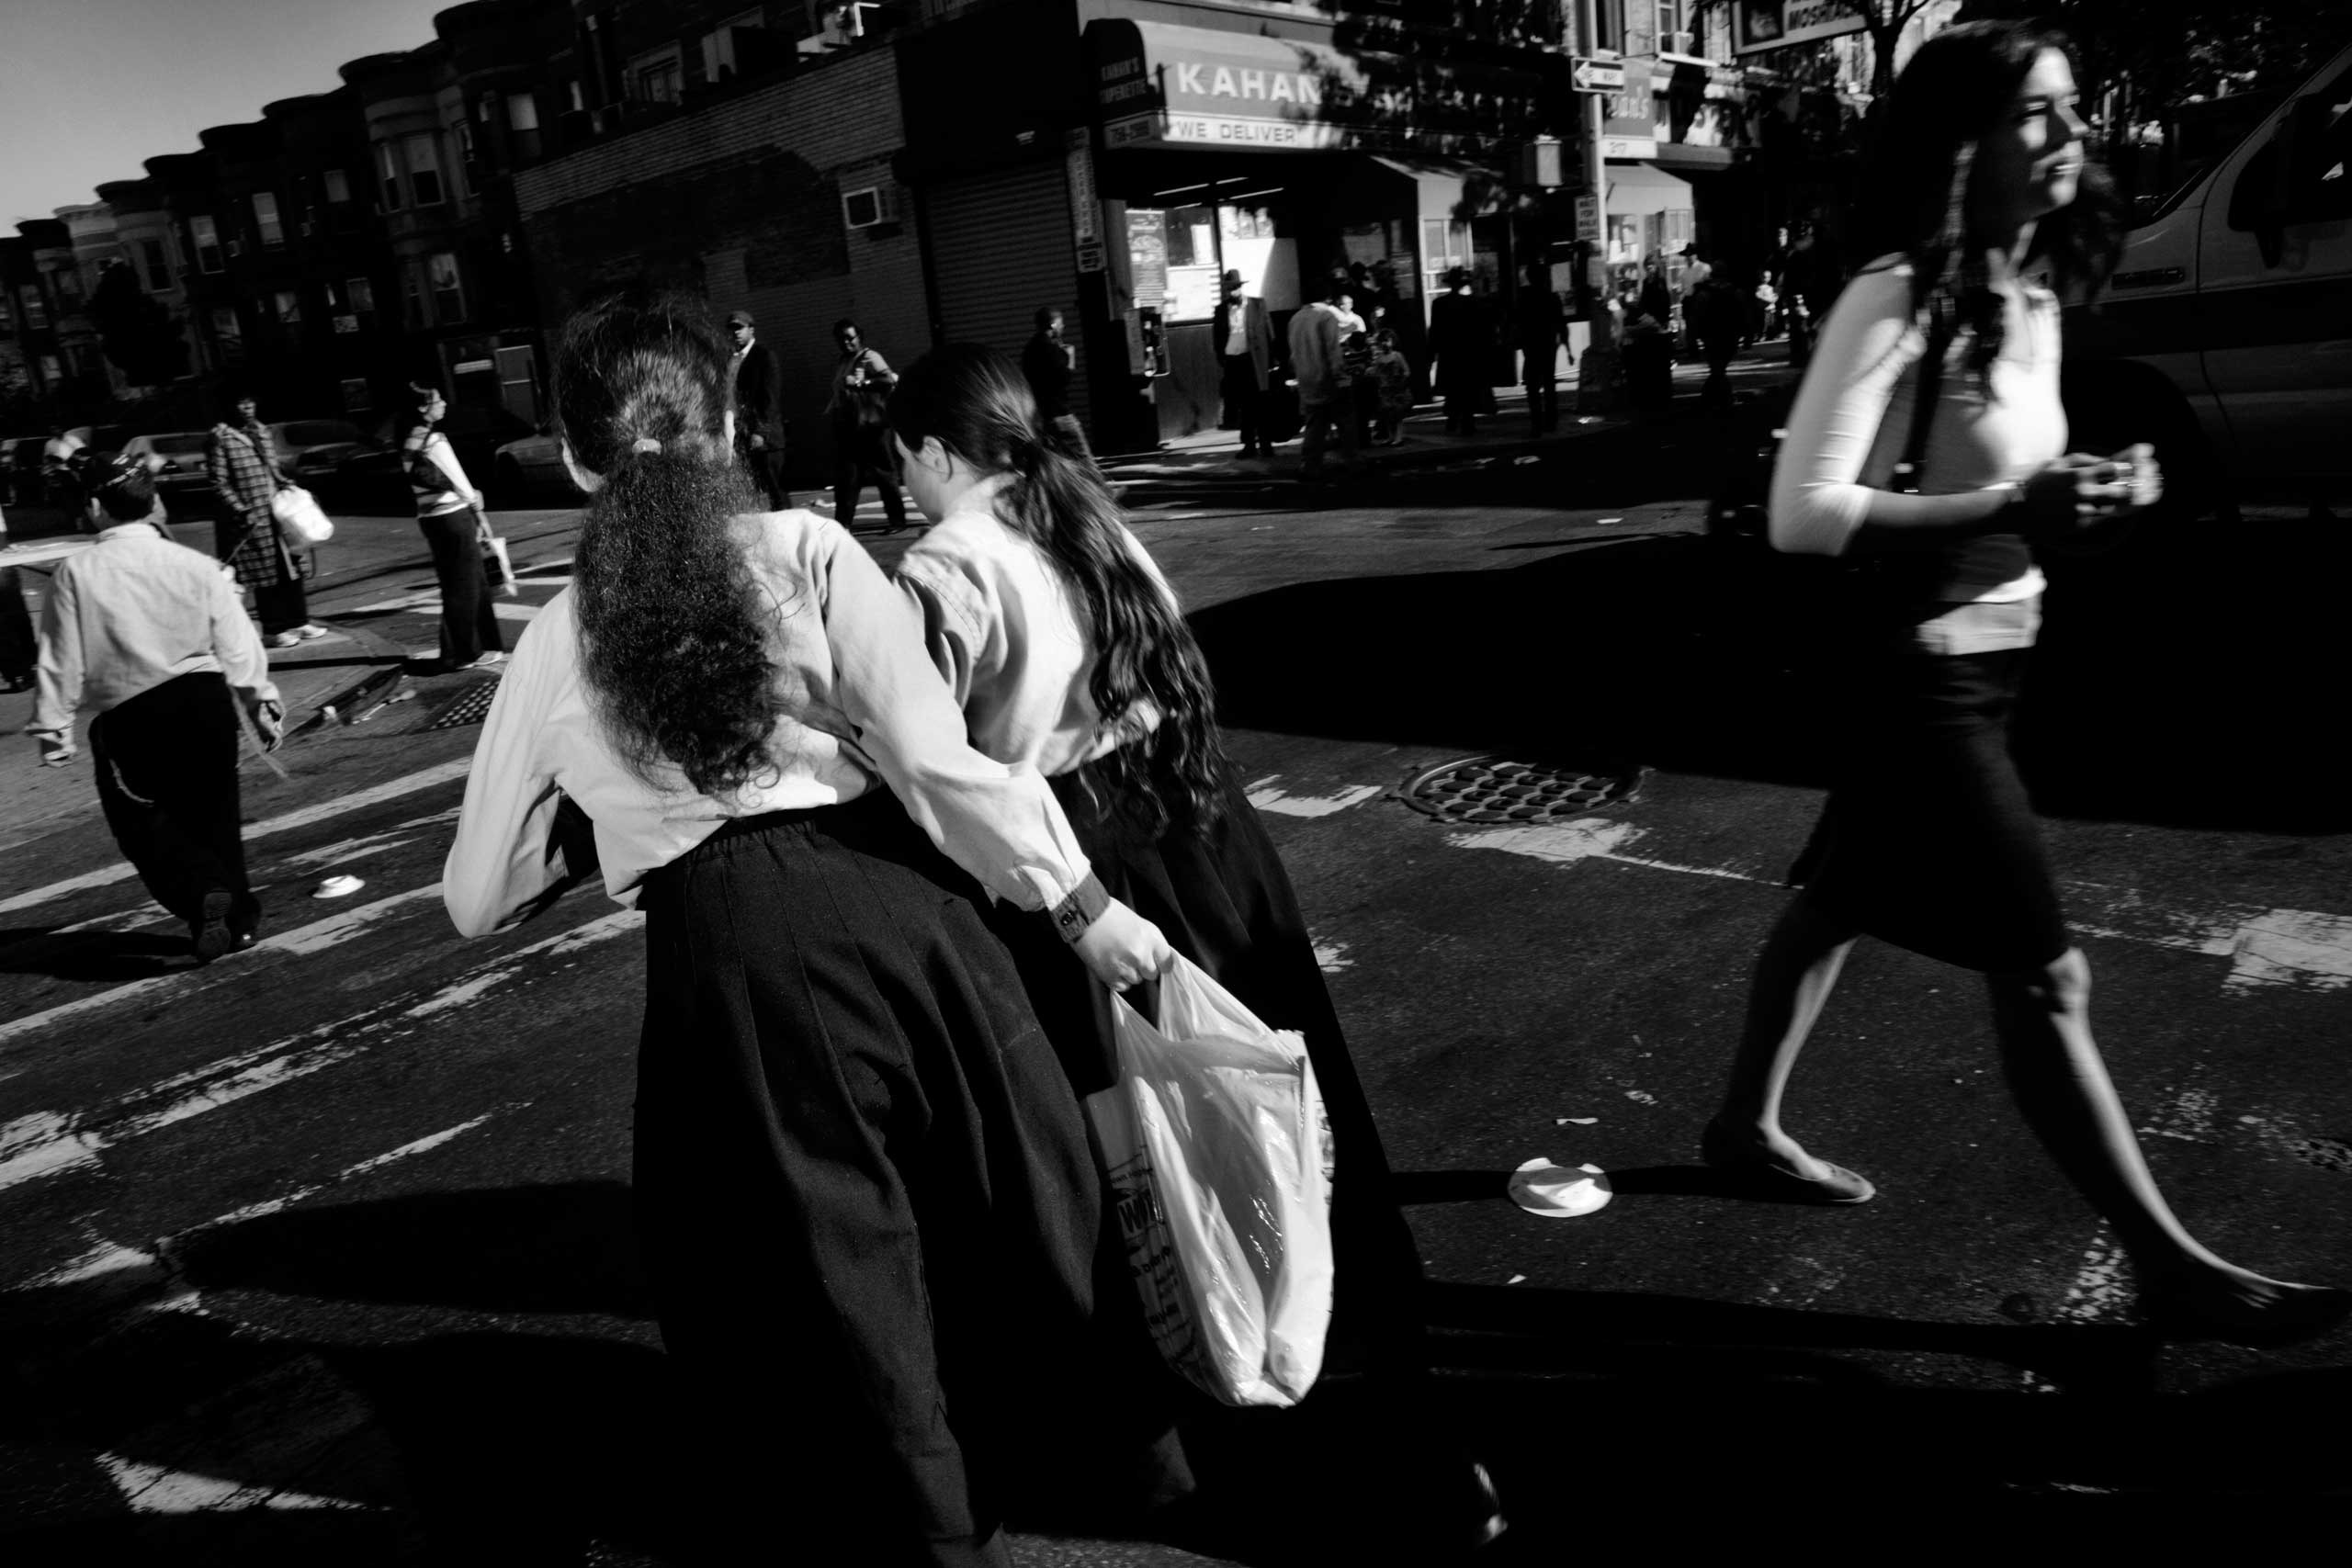 A crowded street on a Friday evening. Women rush home before the beginning of Shabbat. Crown Heights, Brooklyn. Oct. 2010.